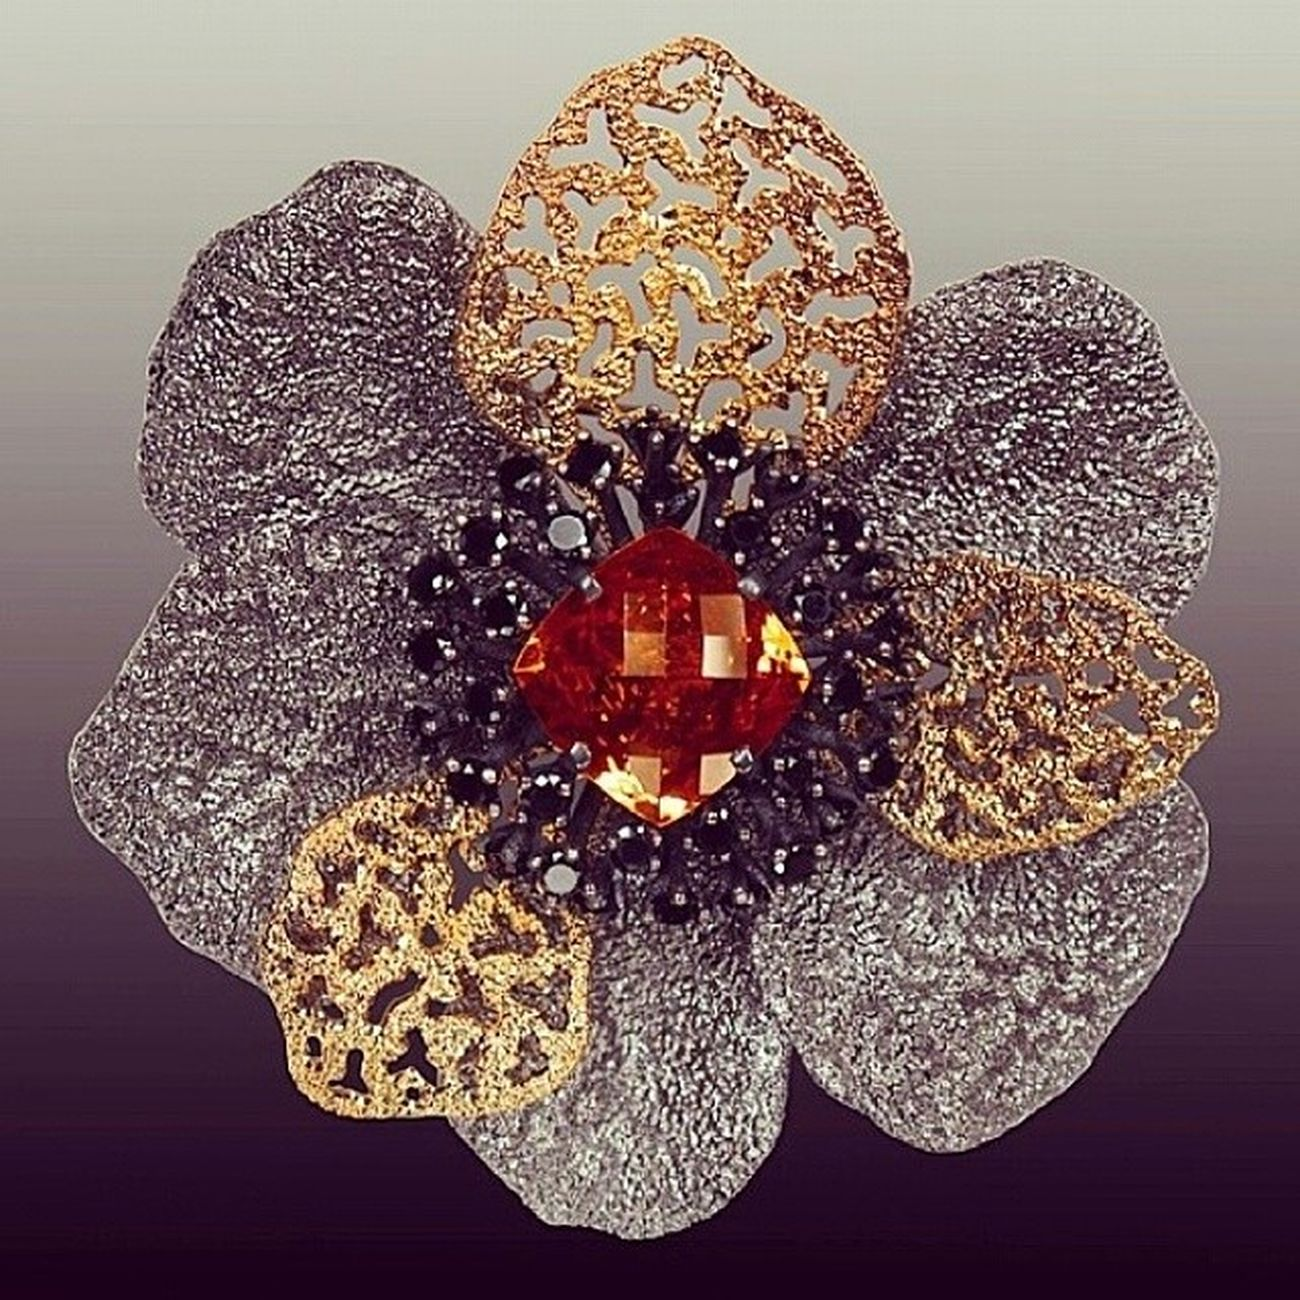 Luks Mücevher markaları dısında Tasarımcı markaları da cok Yaratıcı ve Populer su sıralar 👍Regram from @alexsoldierjewelry Coronaria Flower brooch meticulously detailed with signature Metalwork . Handmade in NYC . May your life be filled with beautiful Flowers ! Flowers Masterpiece Newyork Alexsoldier Obsession Instagramers Jewelryblog Blogger Fashion Fashioninsta Jewellery